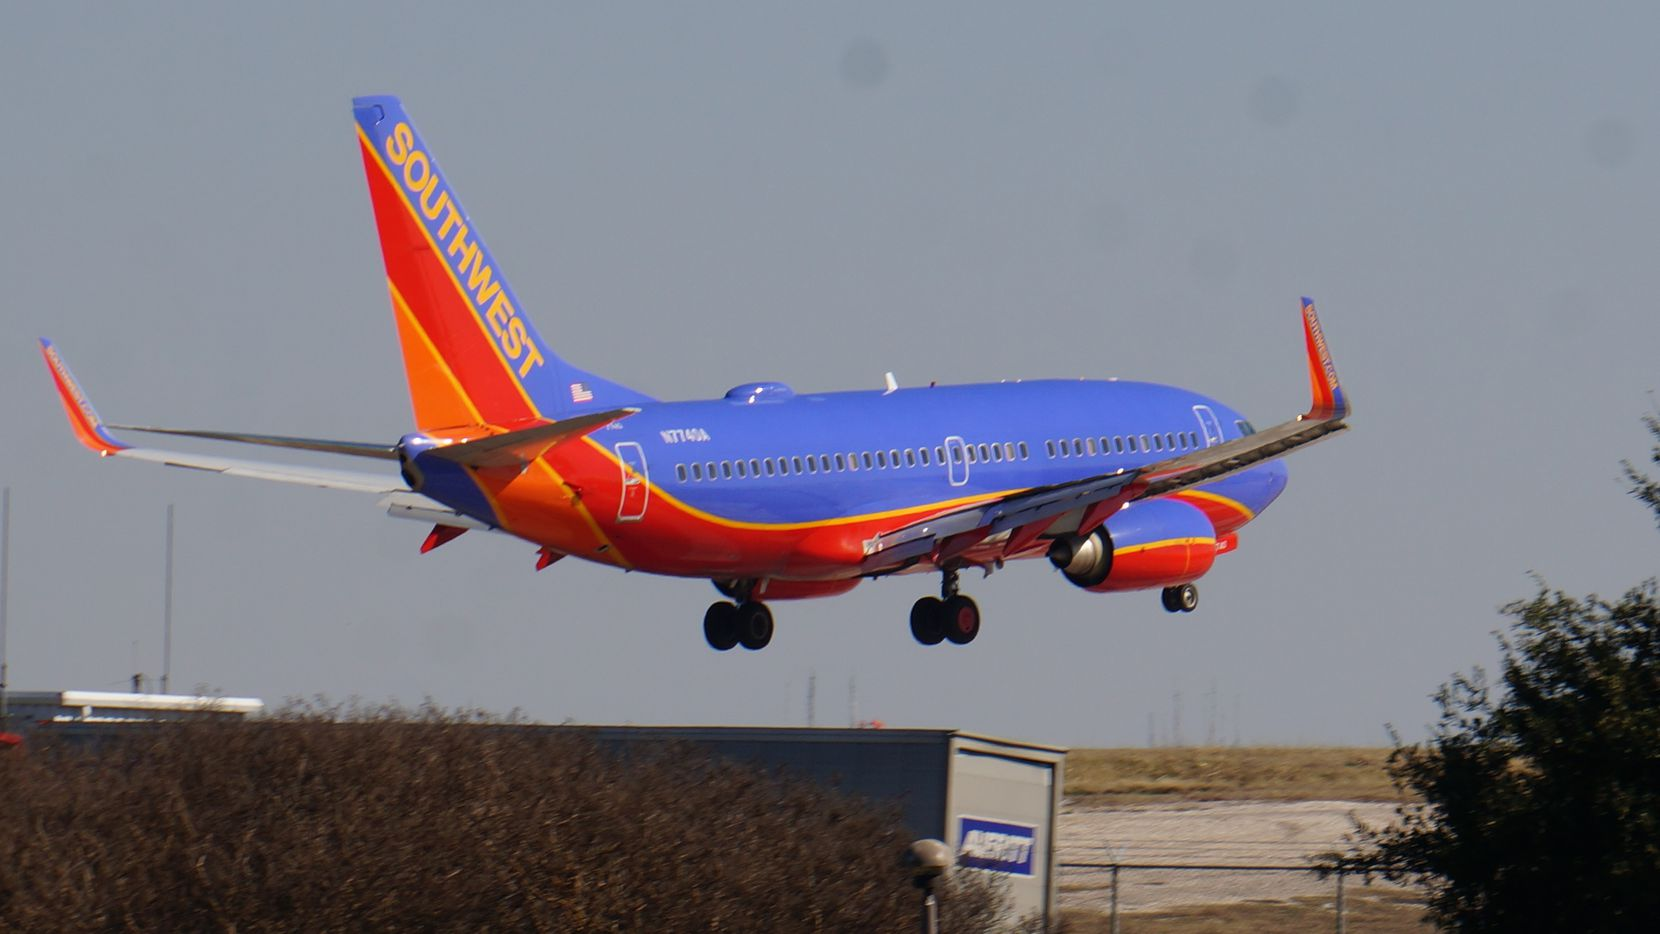 A Boeing 737-700 operated by Southwest Airlines lands at Dallas Love Field in this February photo. (Terry Maxon/DMN)